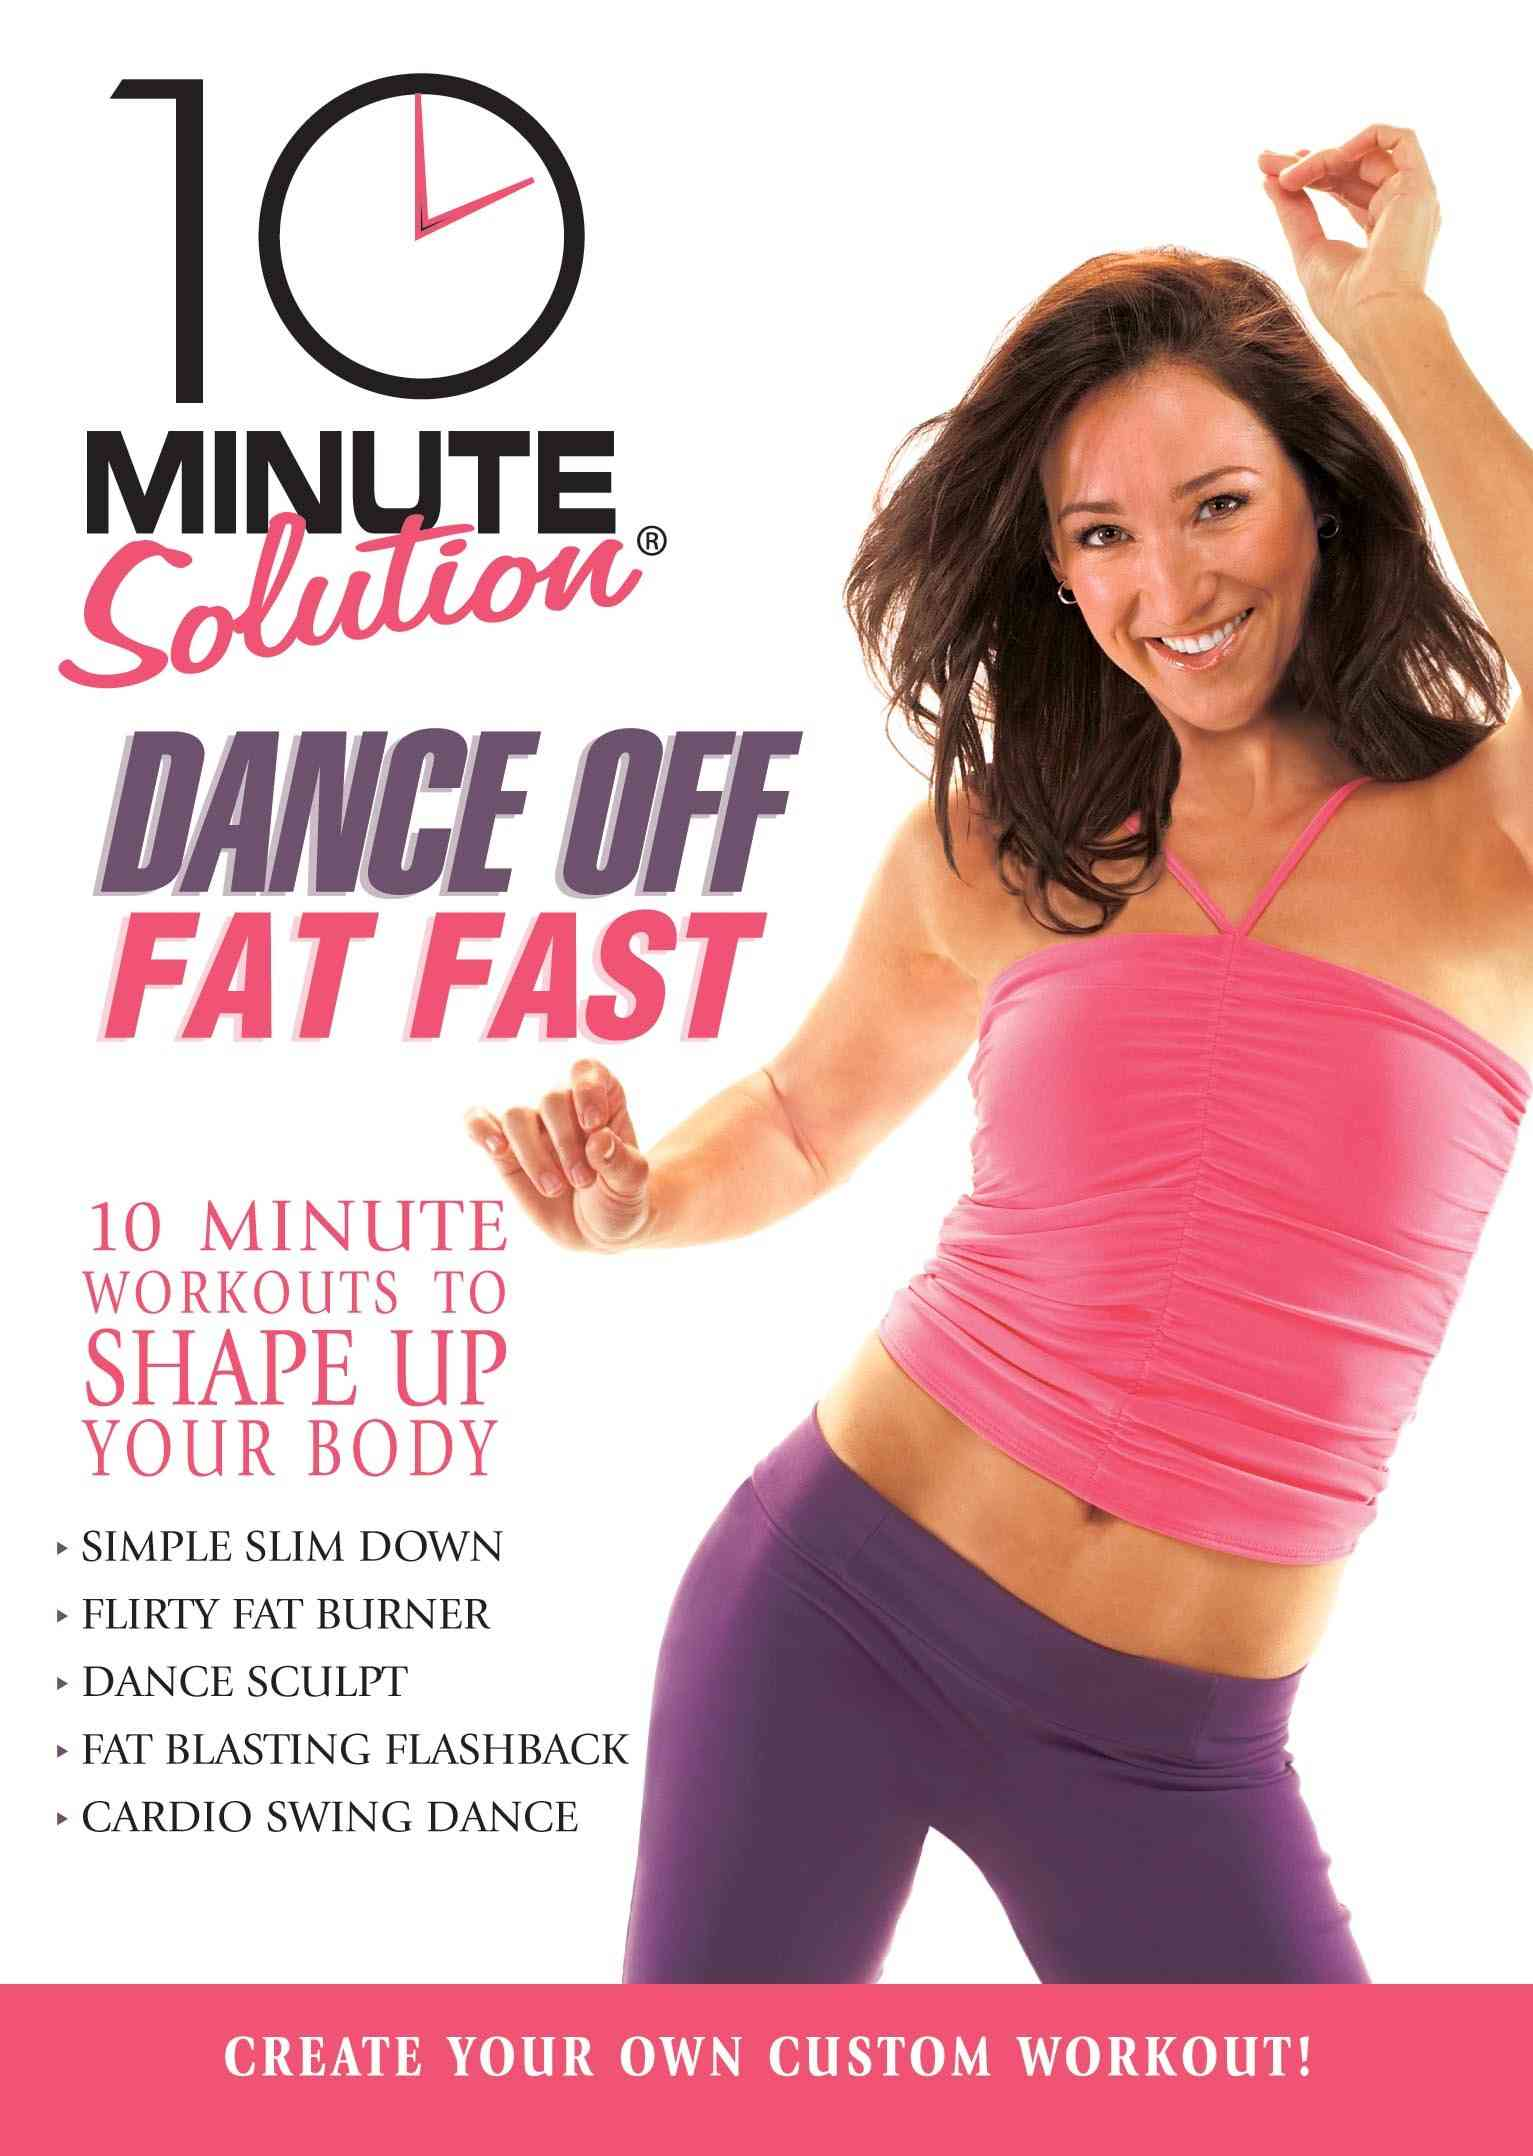 10 MINUTE SOLUTION:DANCE OFF FAT FAST BY 10 MINUTE SOLUTION (DVD)